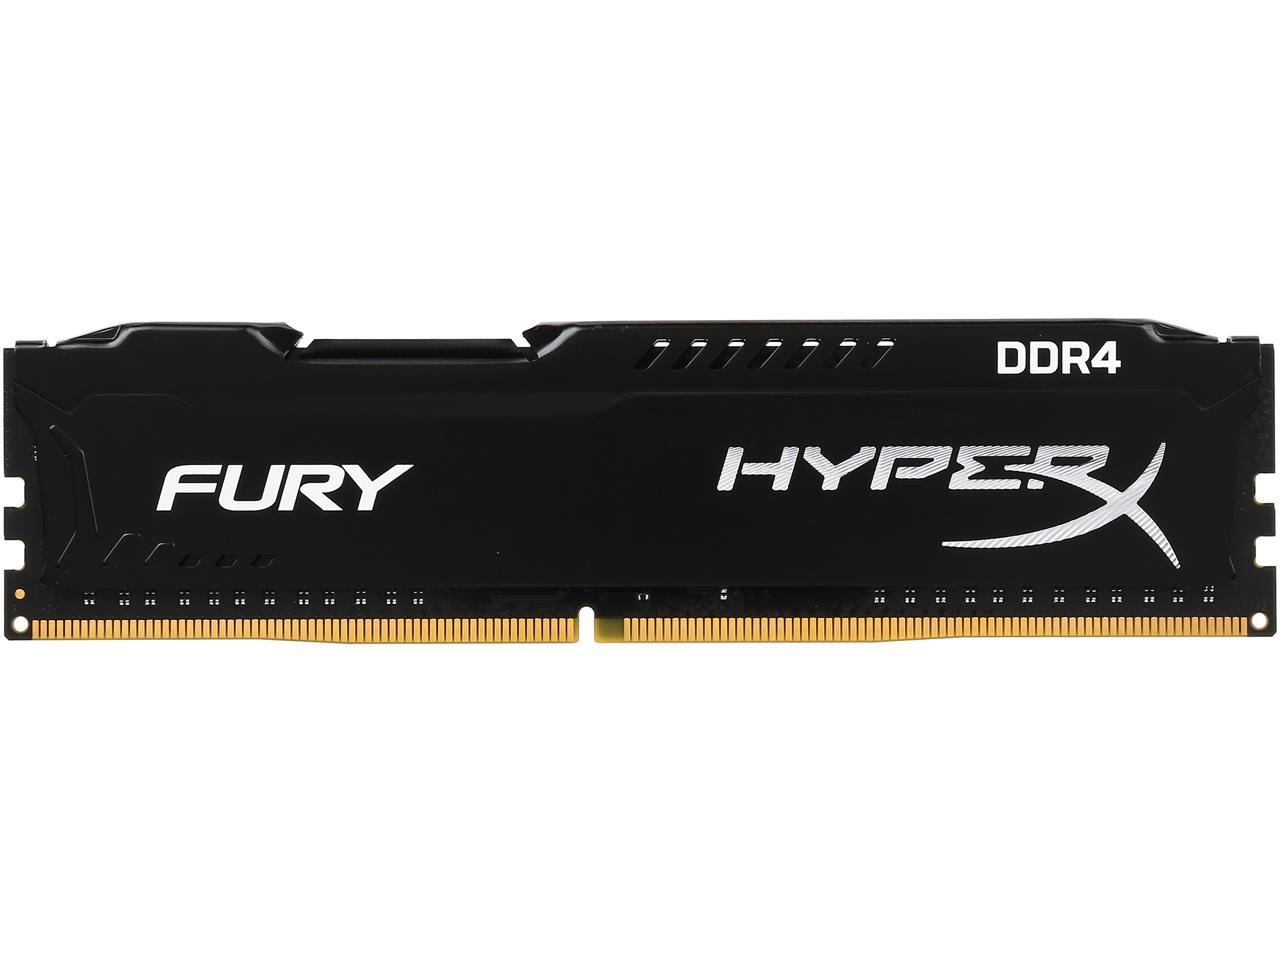 I Had Done Some Extensive Research On Good Reliable And Fast Ram Through This Came Acrossed The Hyperx Fury By Kingston Technoloy